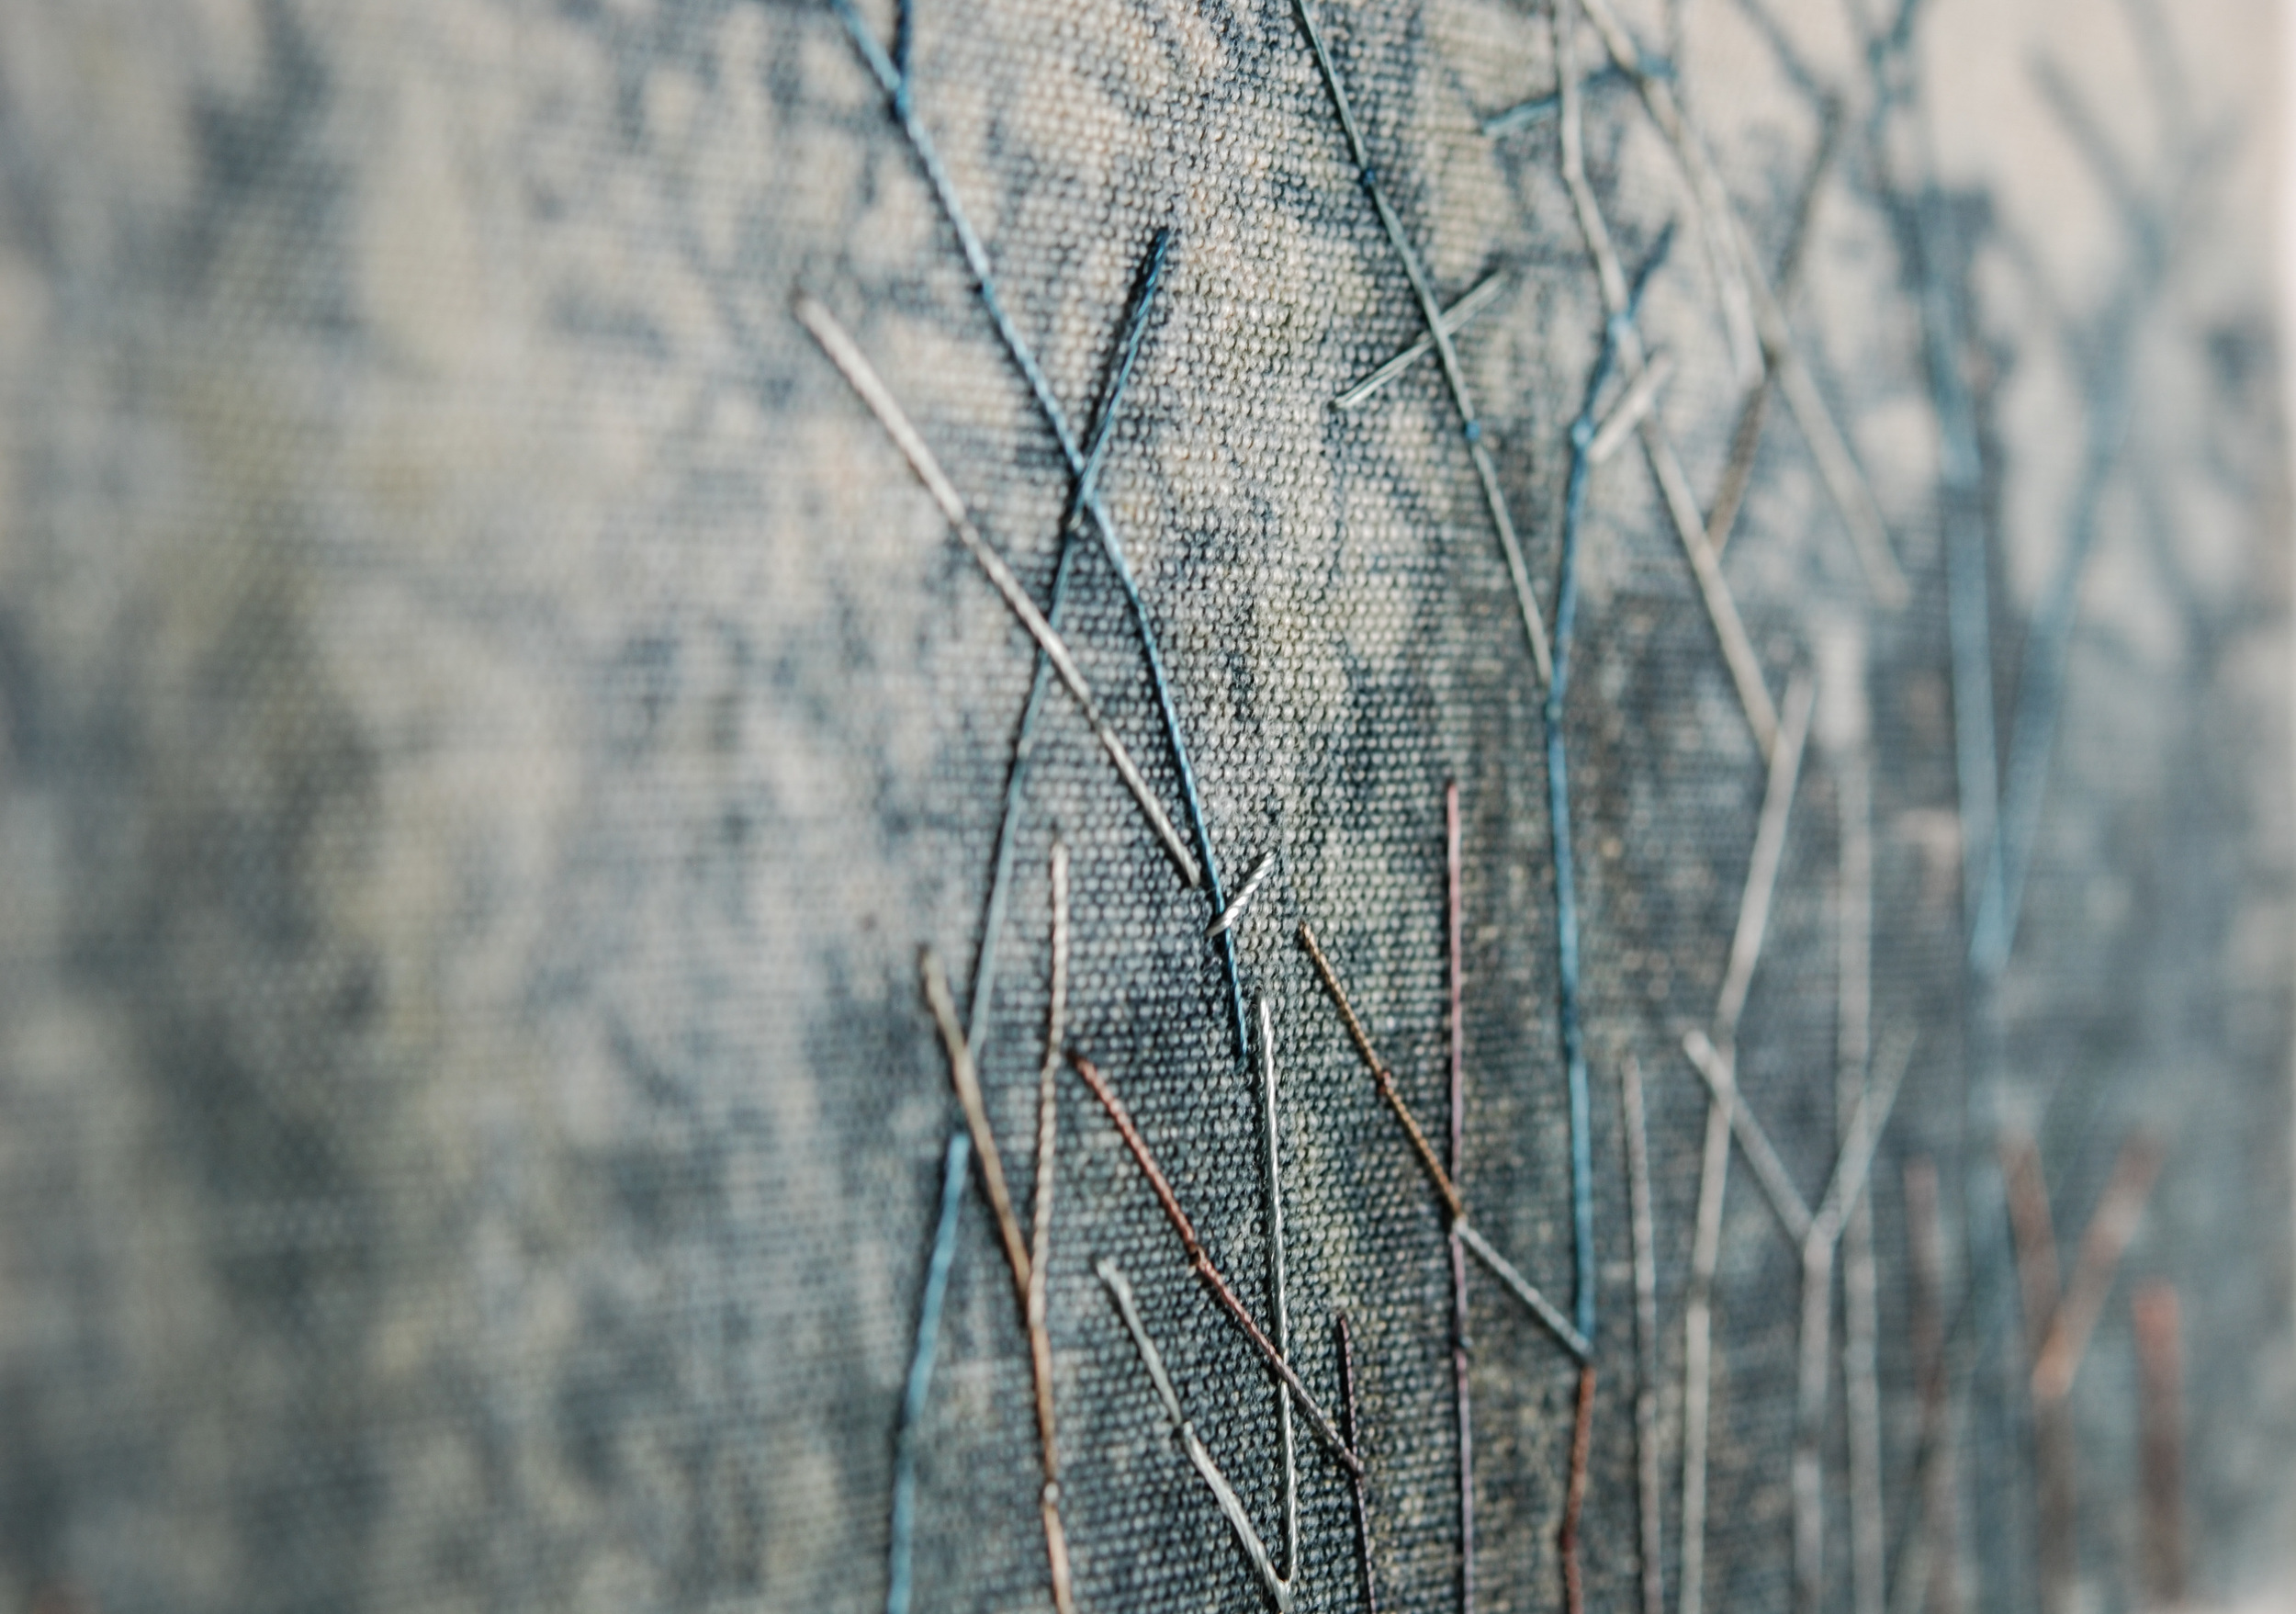 Blackthorn 22 (detail